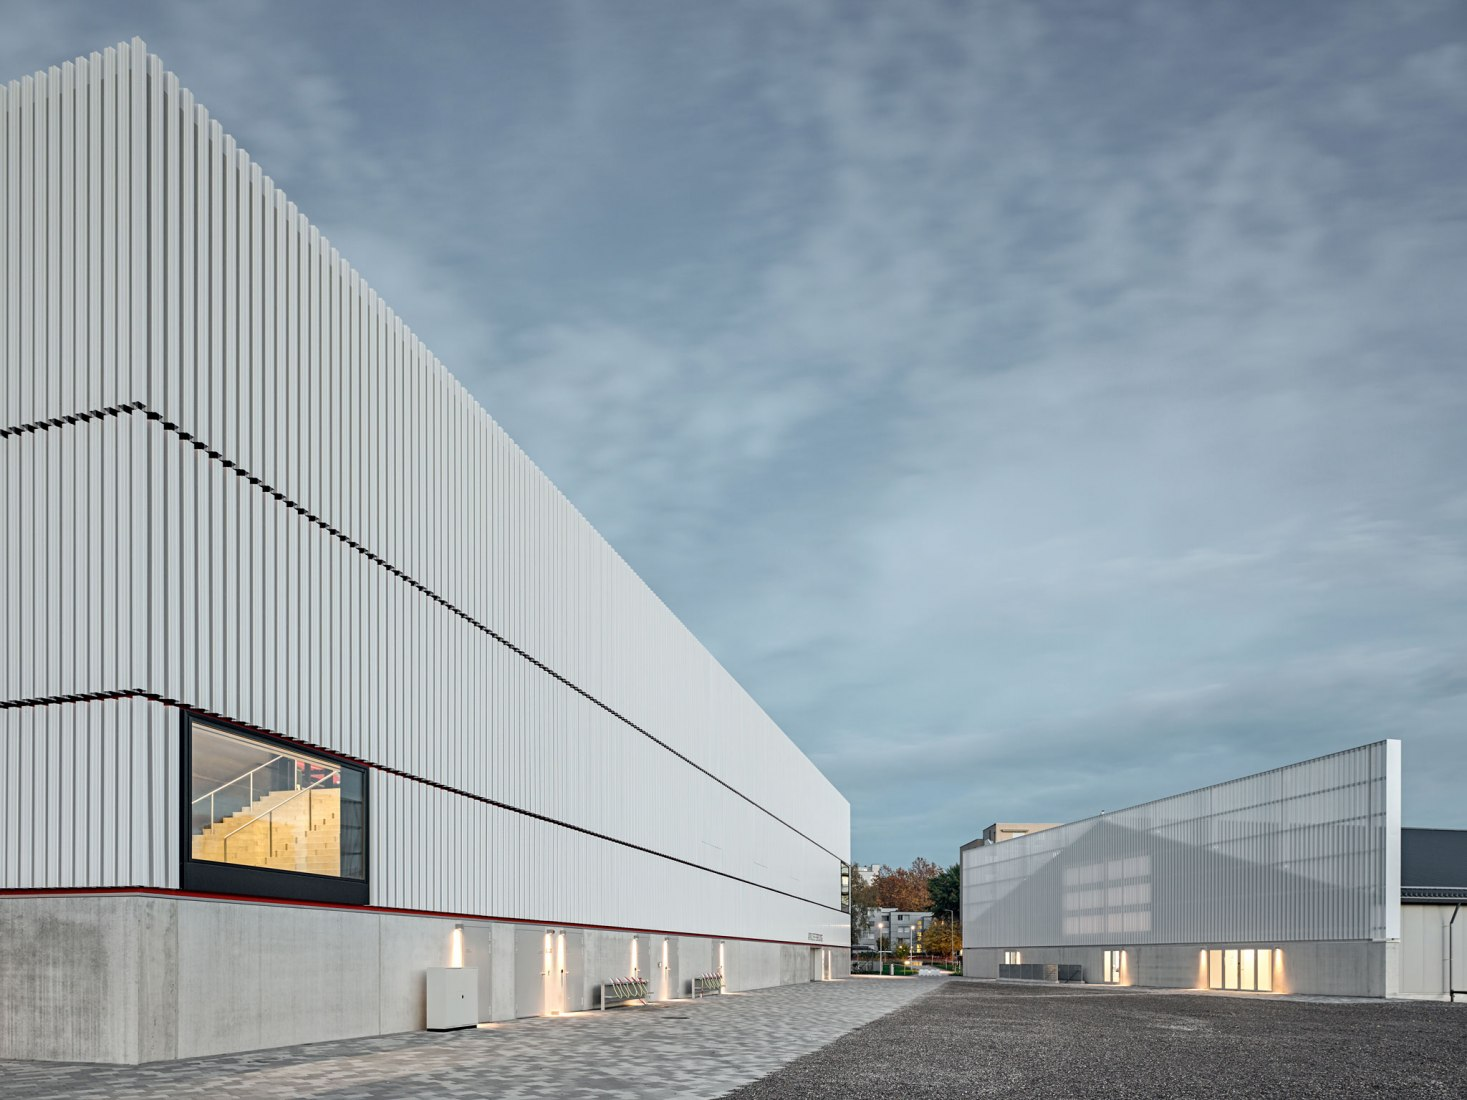 WIN4 Sports Centre by EM2N. Photograph by Roger Frei